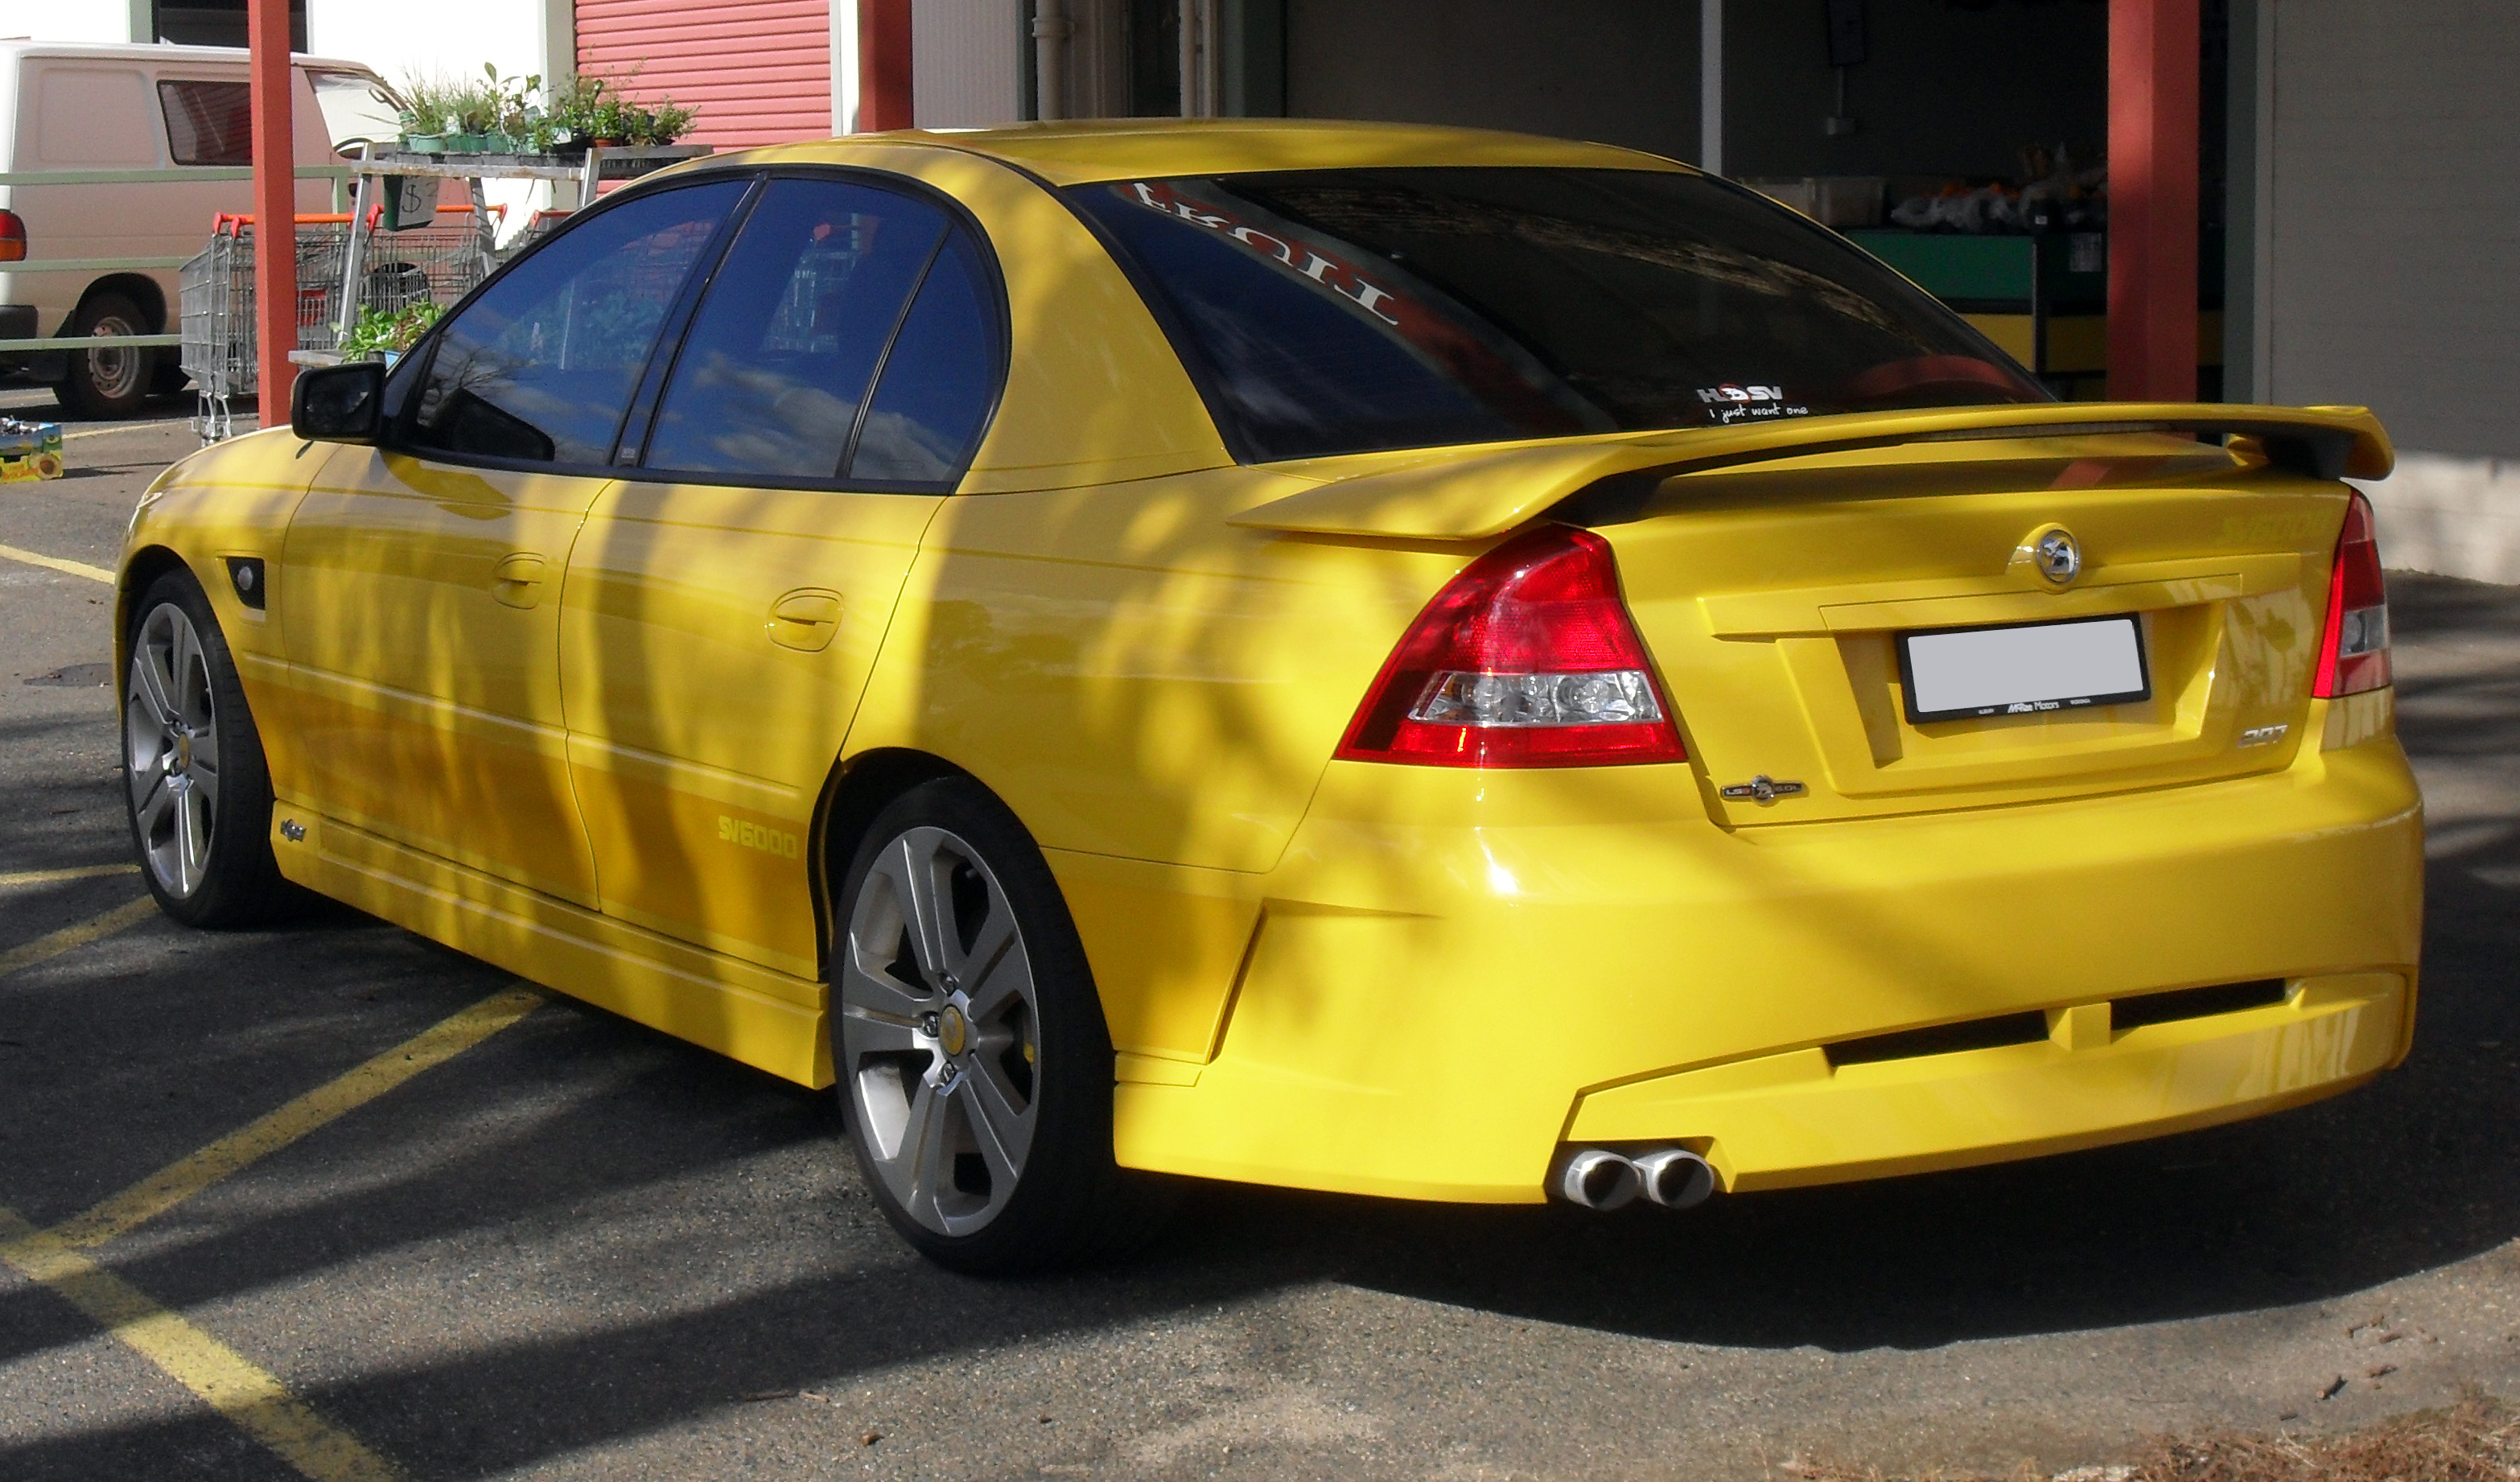 sell my car – holden sv6 yellow